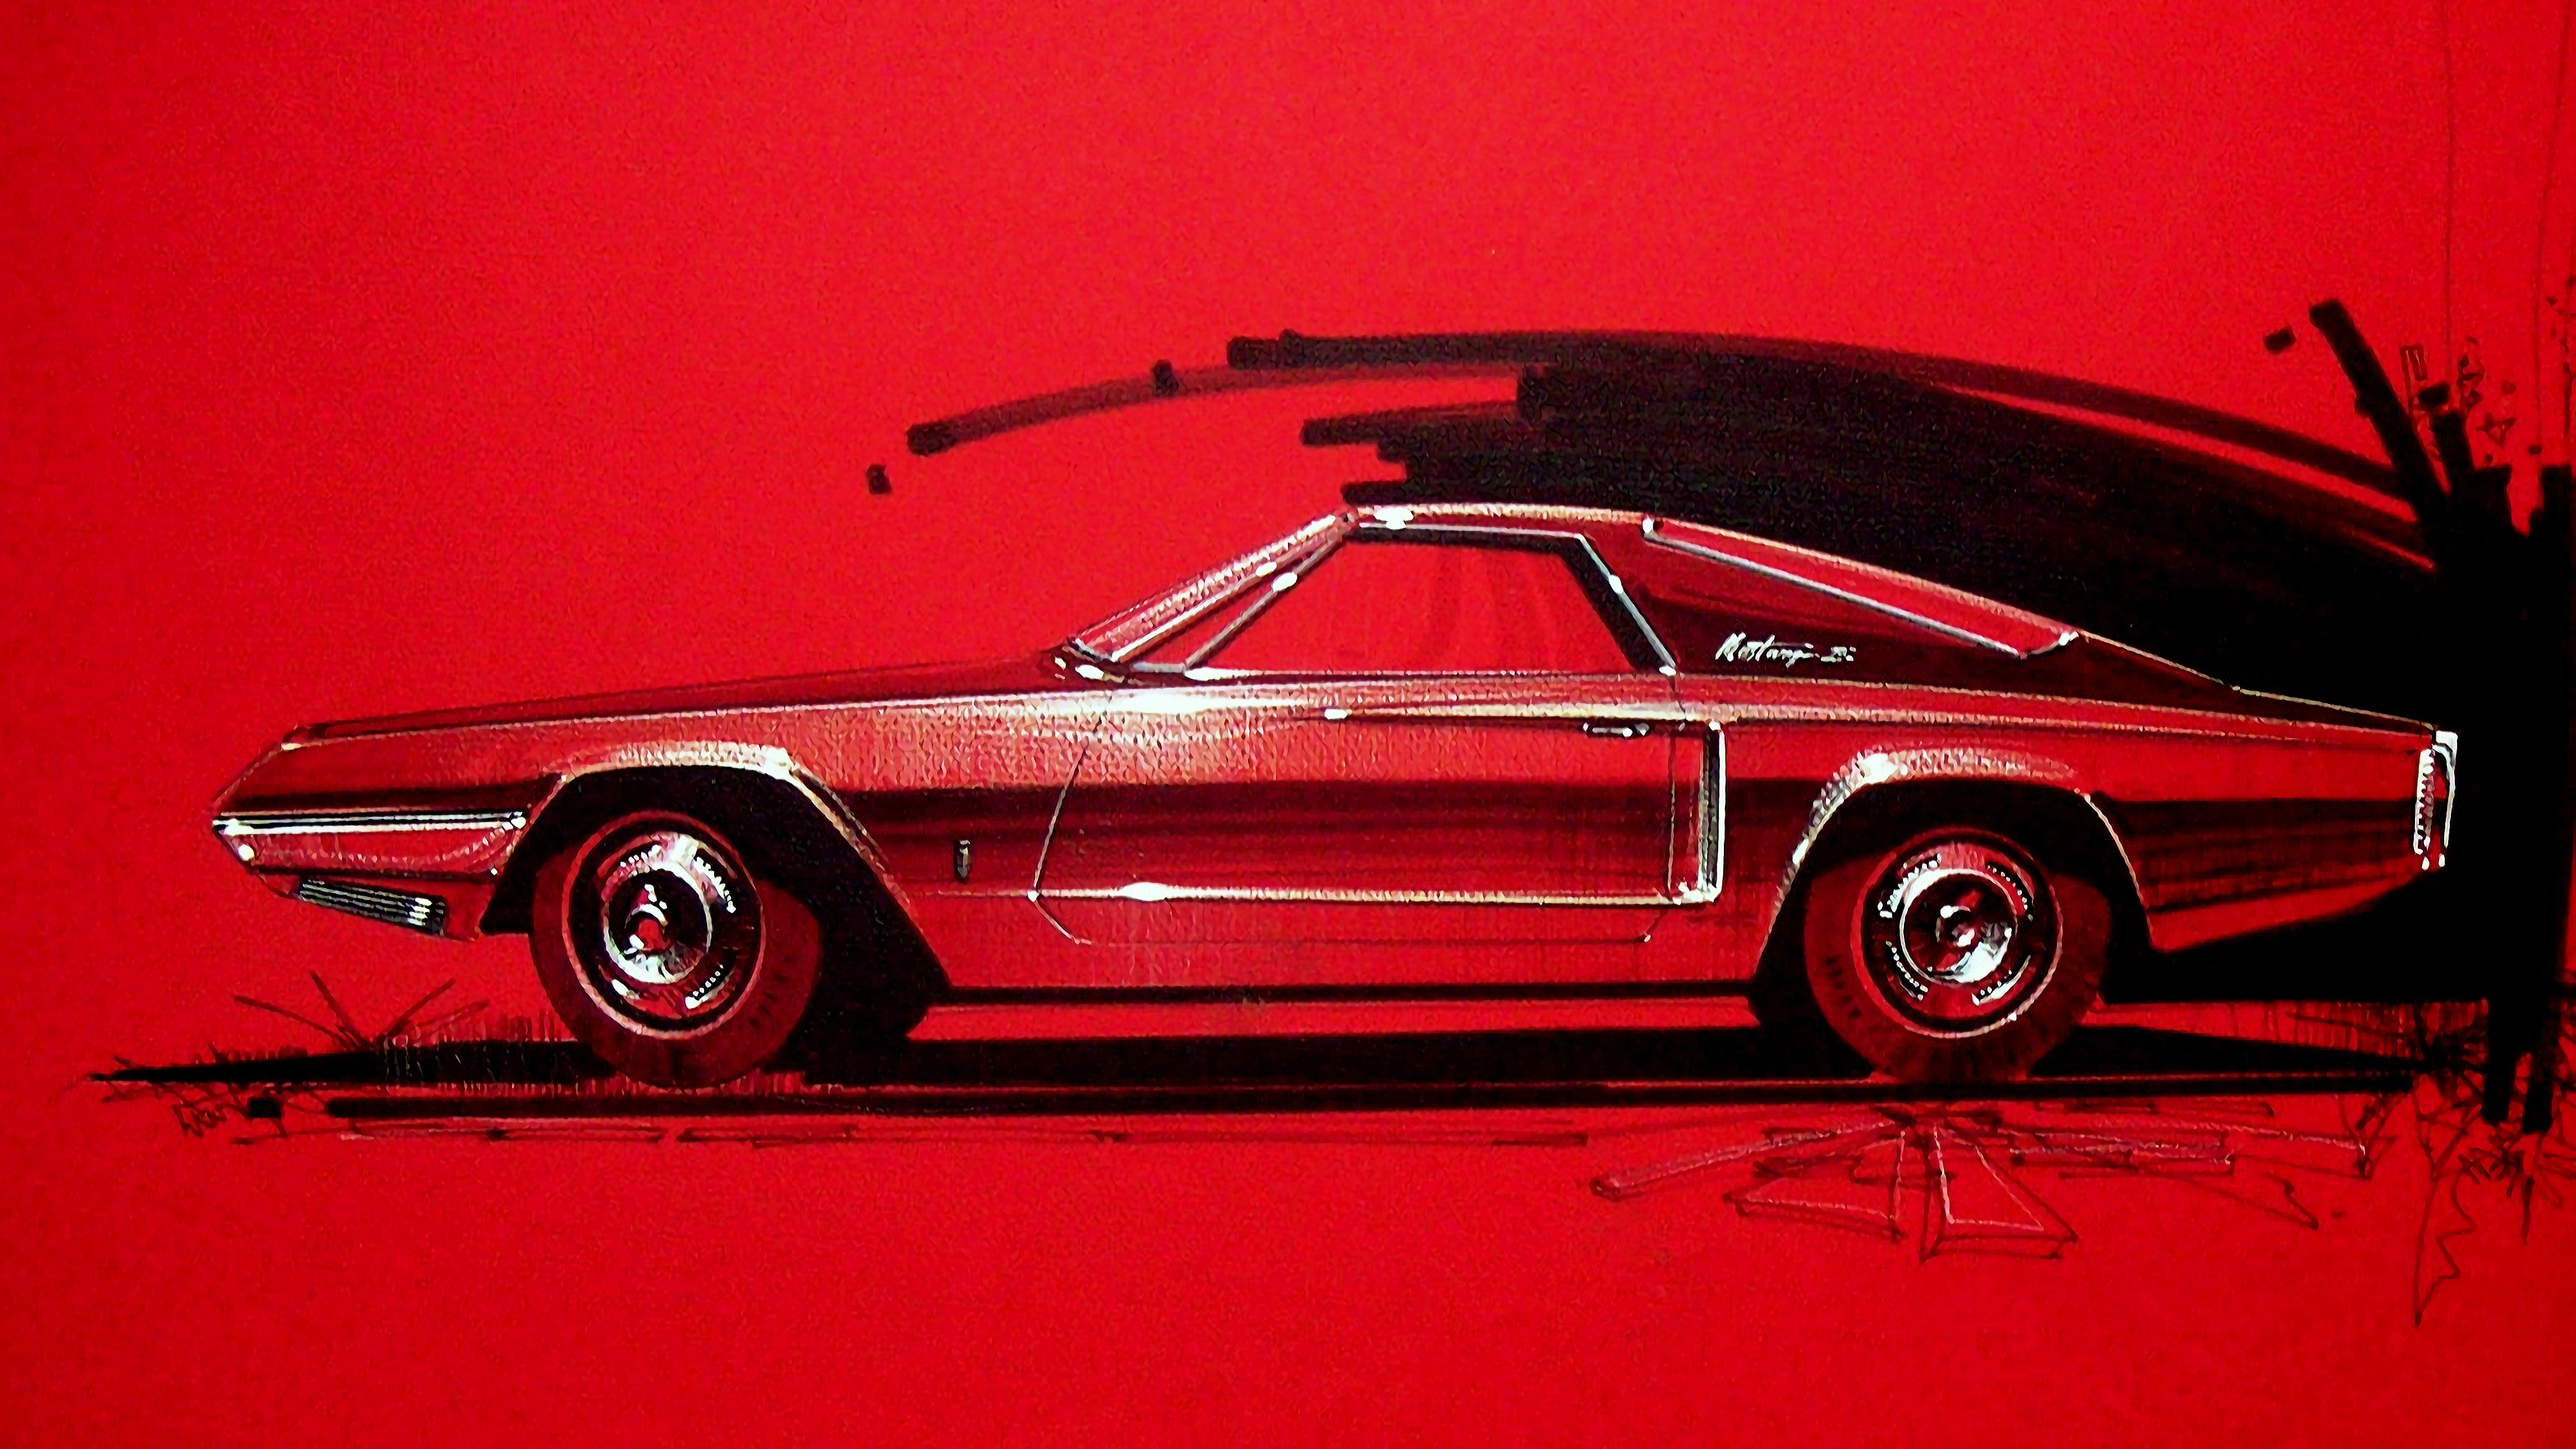 Mustang 4k Wallpapers For Your Desktop Or Mobile Screen Free And Easy To Download